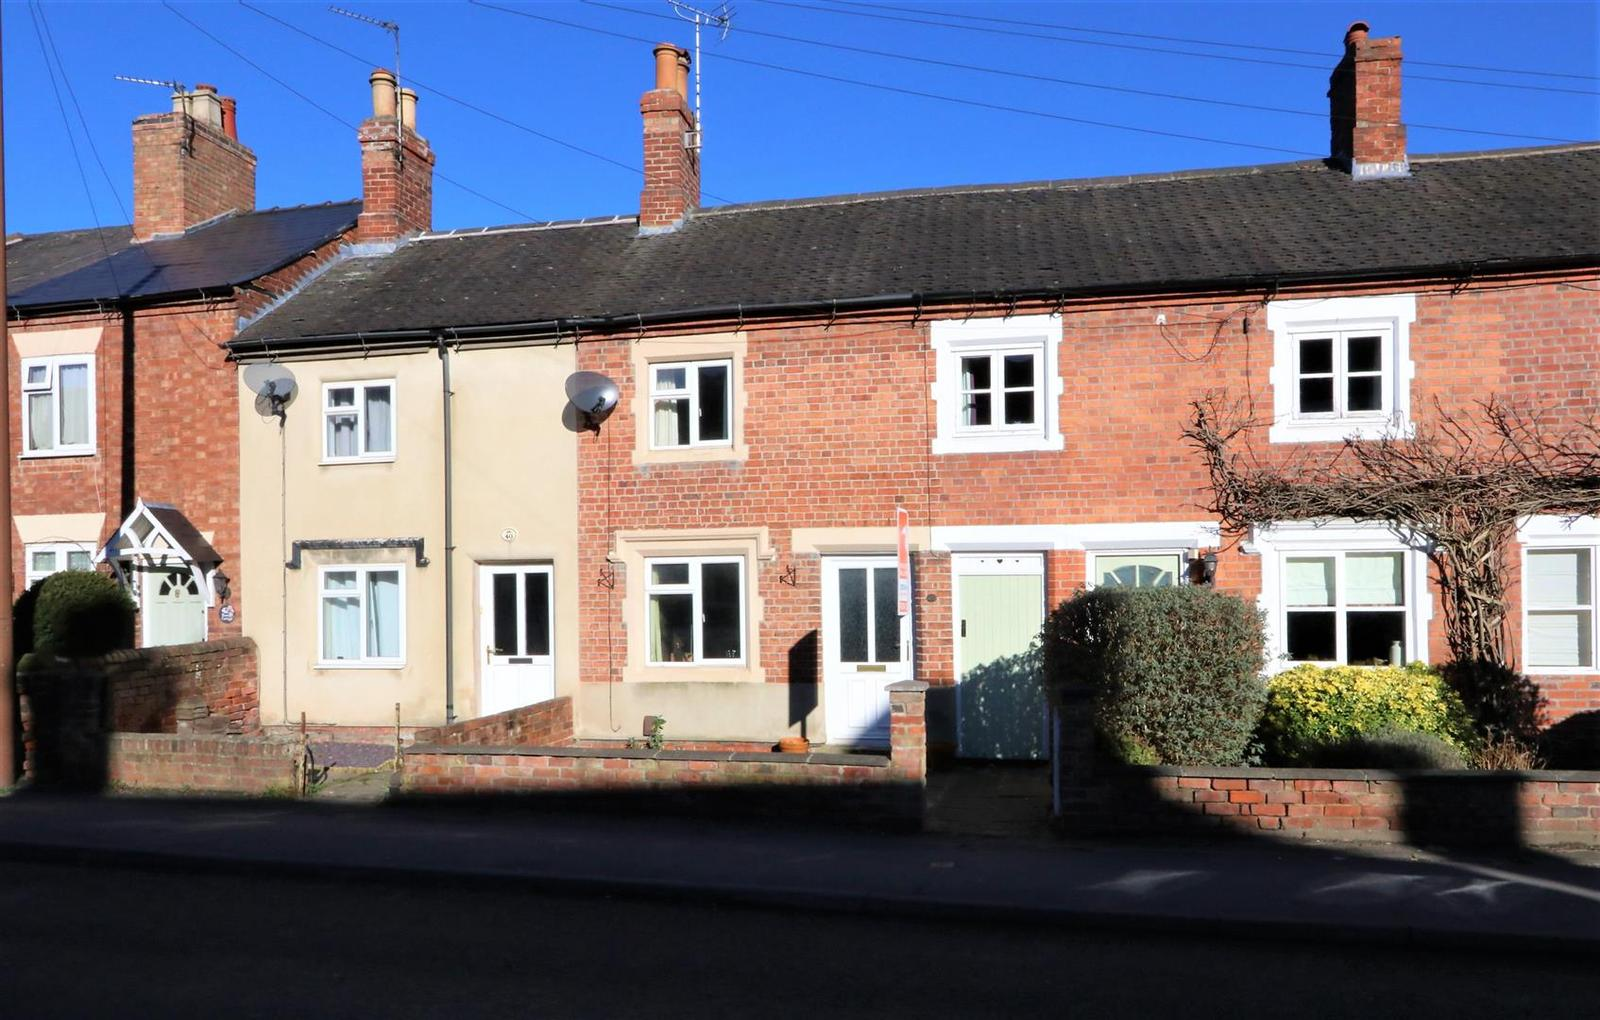 2 Bedrooms Terraced House for sale in Tamworth Road, Ashby-De-La-Zouch, LE6...